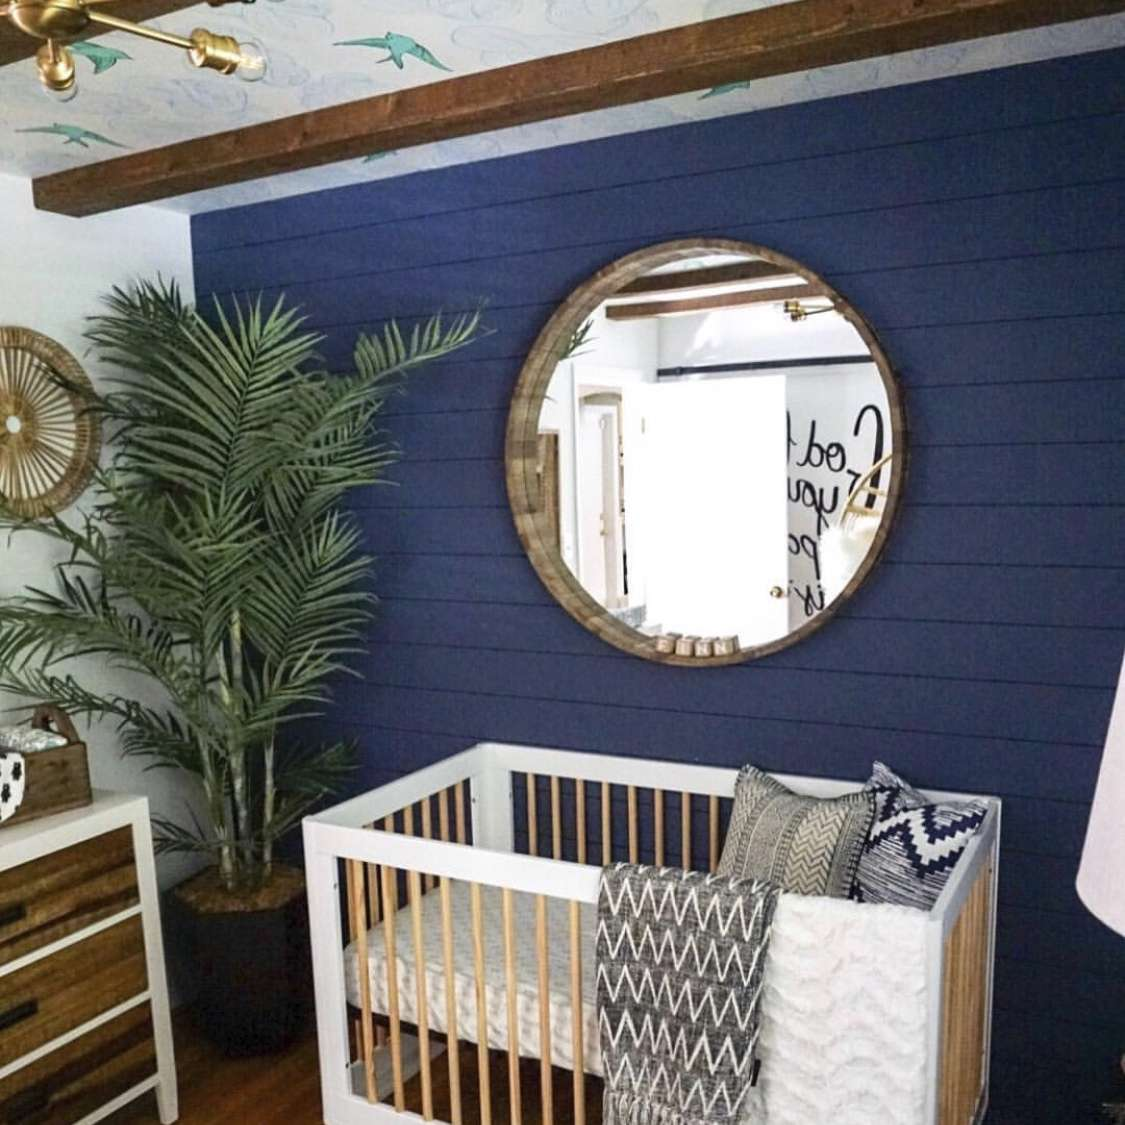 wallpaper mural used on the ceiling of a nursery, that also features painted shiplap, wood beams, and a large mirror